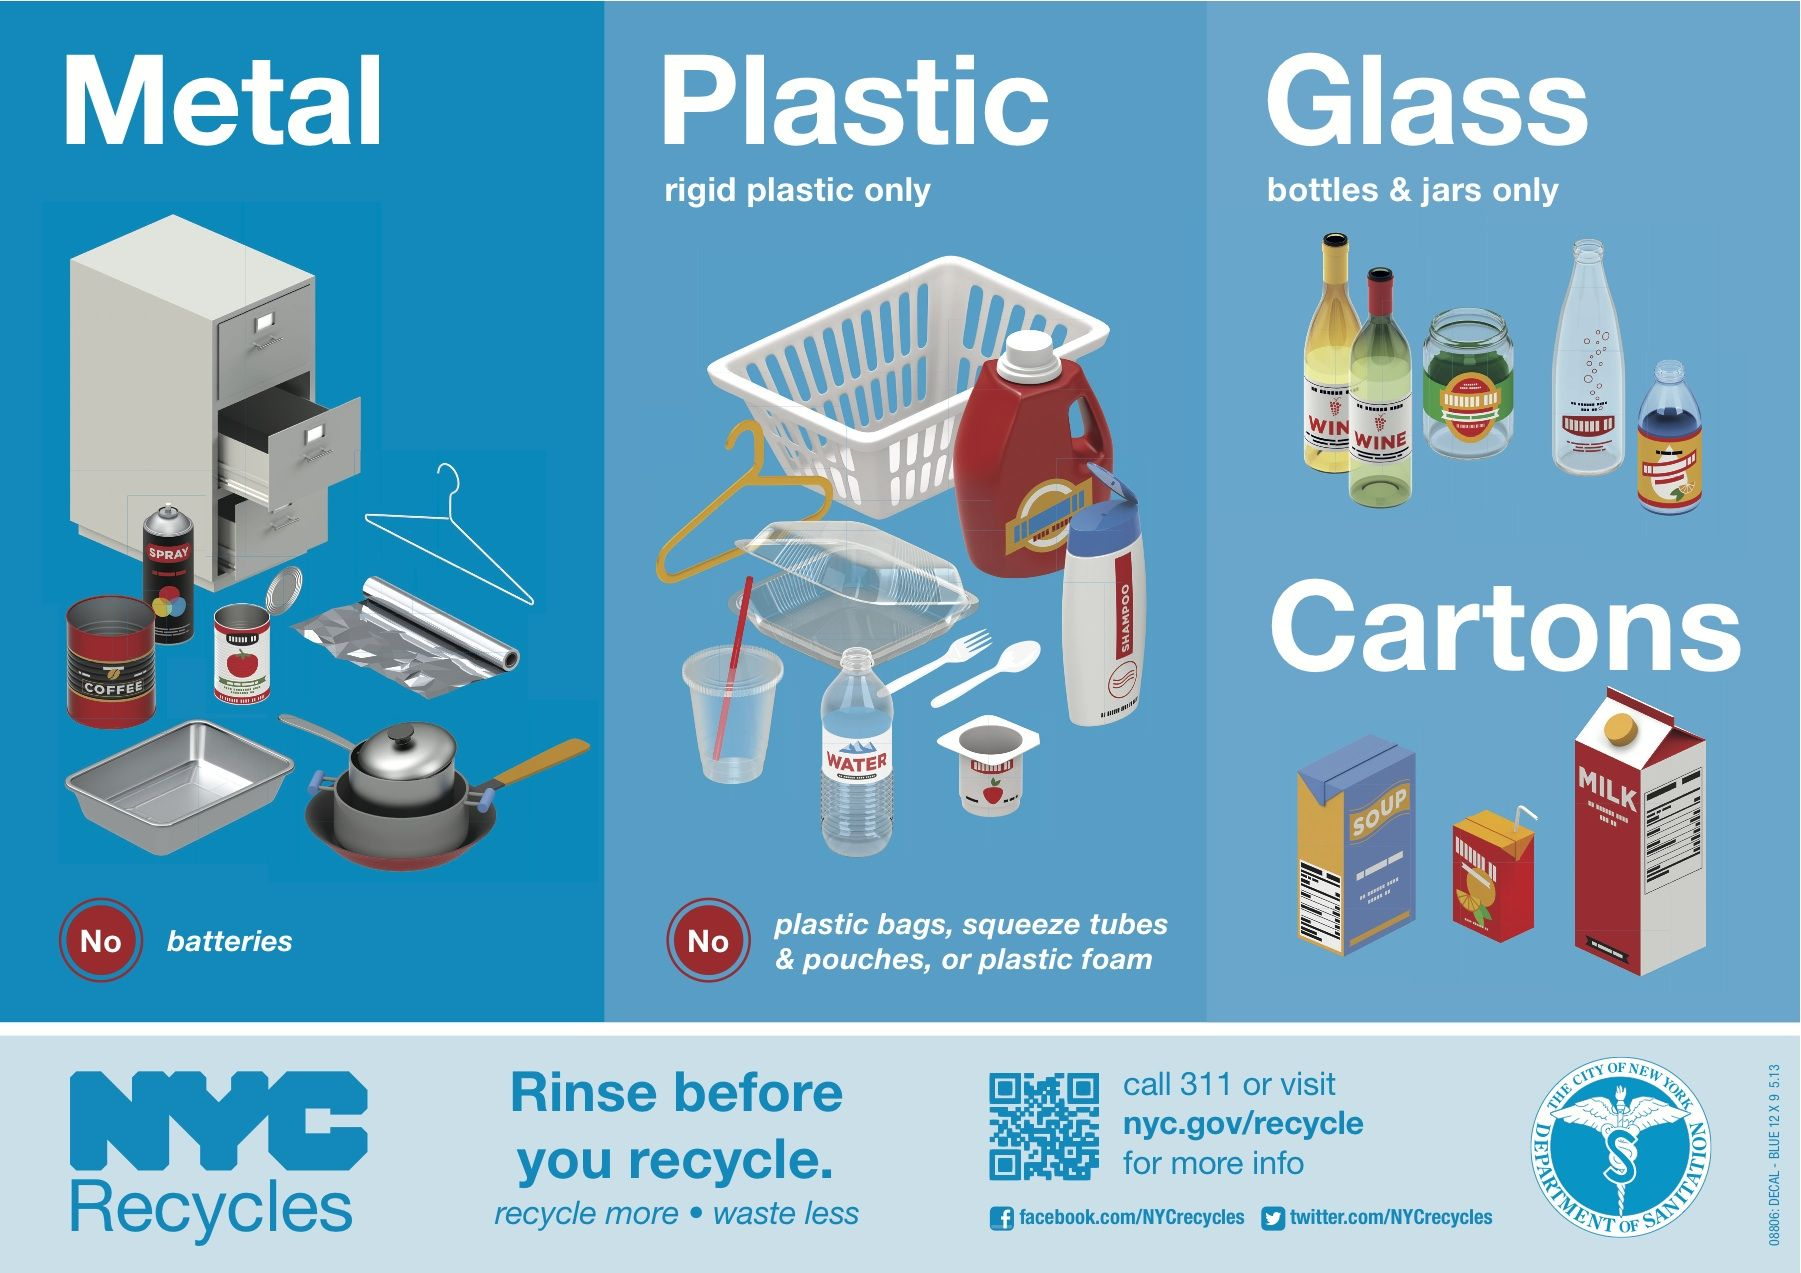 Nyc Recycles Information Pdf Http Www Nyc Gov Html Nycwasteless Downloads Pdf Materials Recycling Info Packet Pdf Recycling Bottles And Jars Plastic Glass